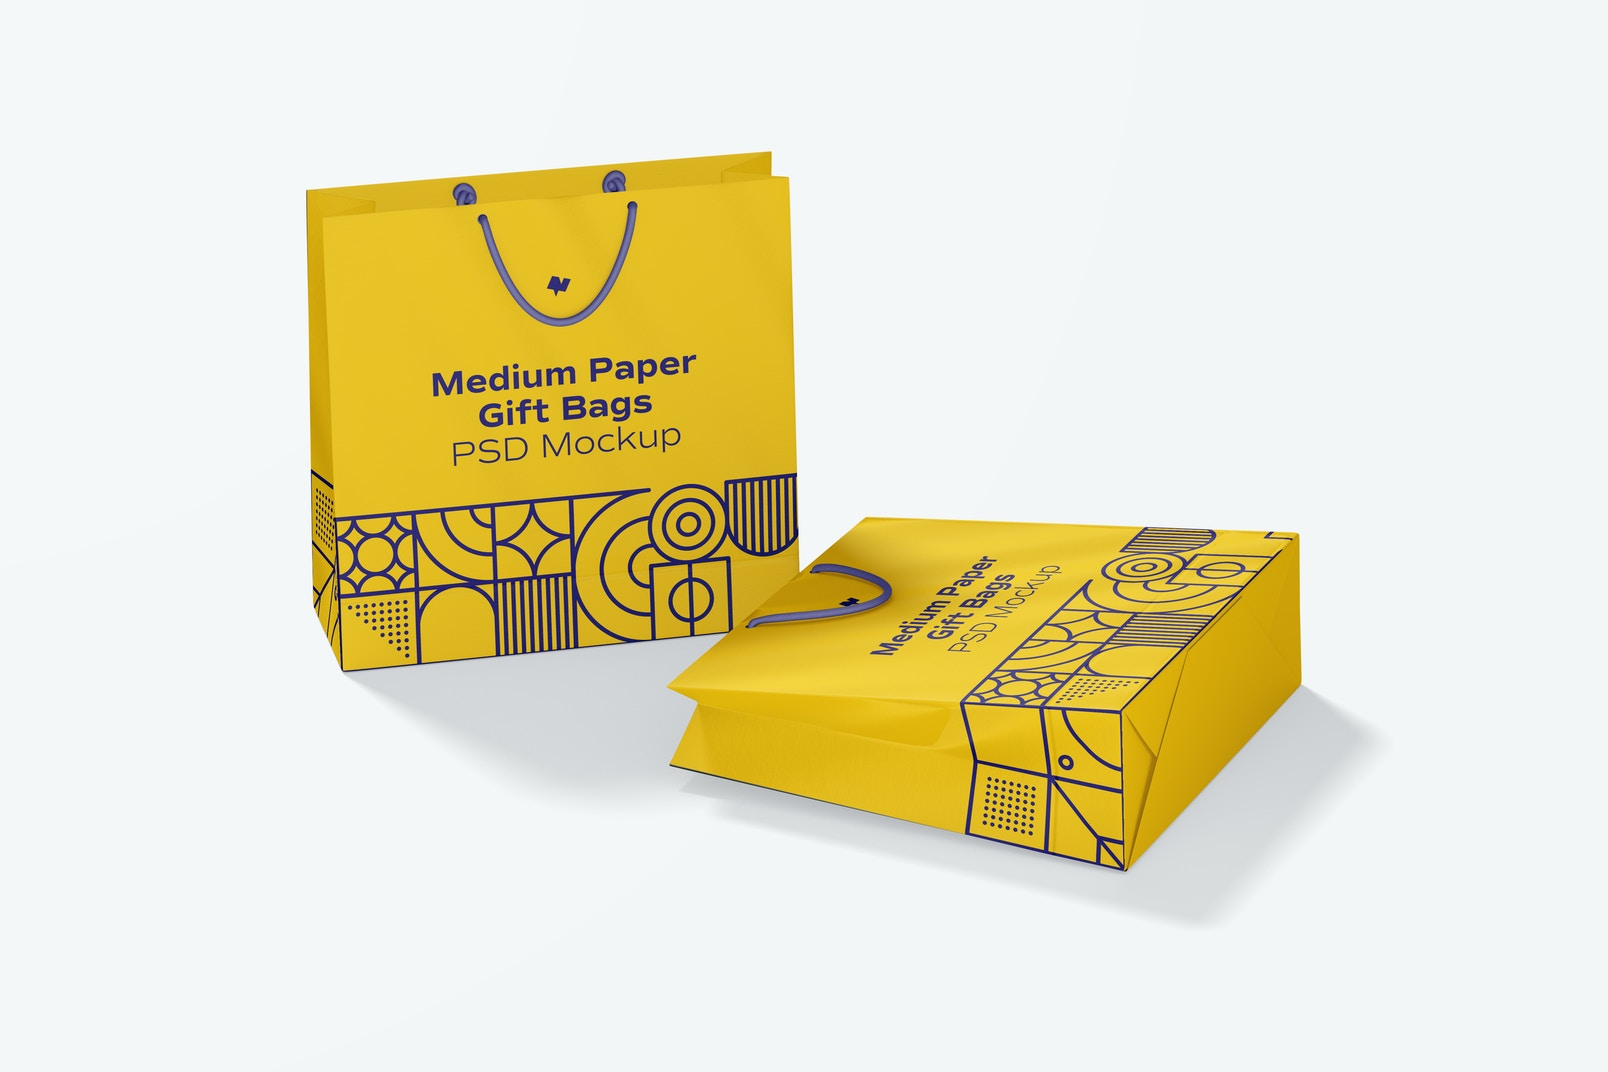 Medium Paper Gift Bag With Rope Handle Mockup, Dropped